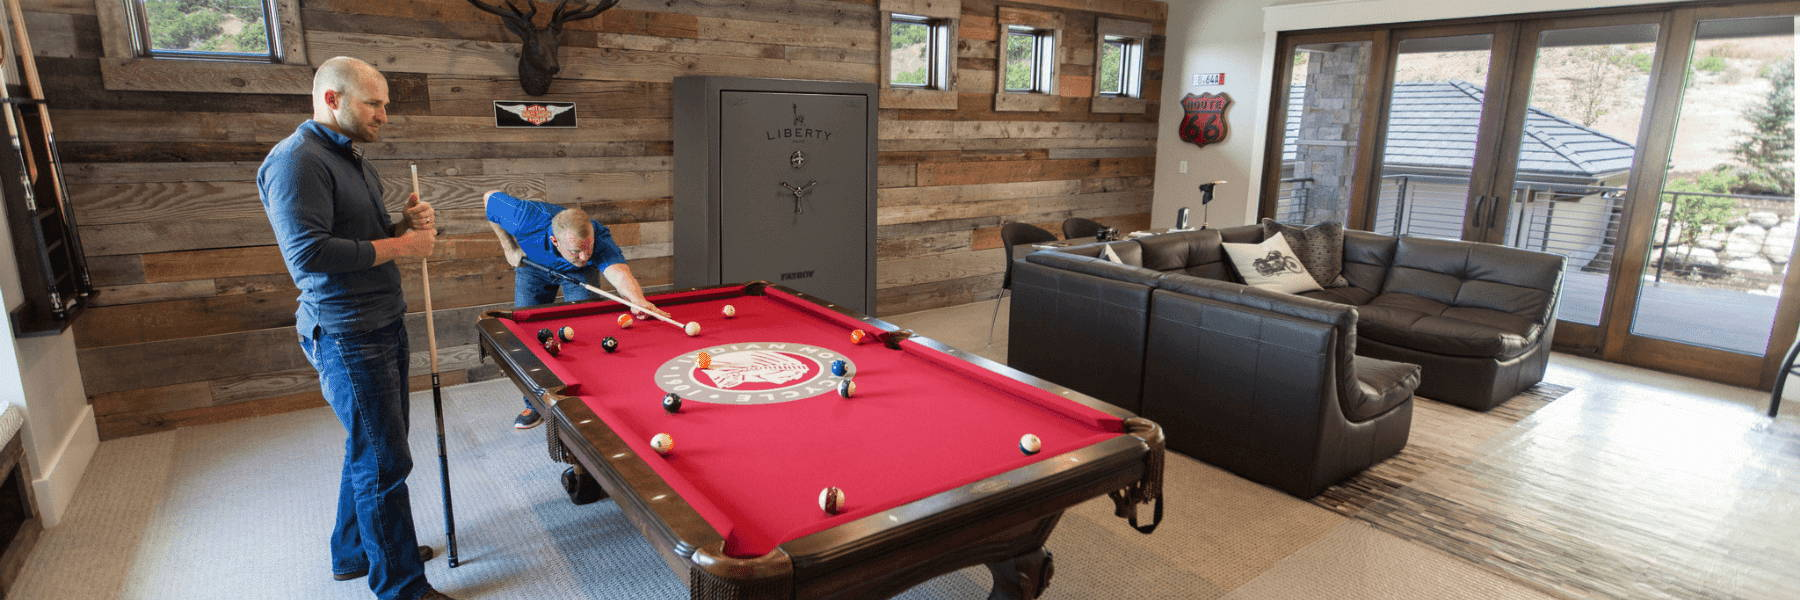 Liberty safe in pool table room Professional Delivery & Installation